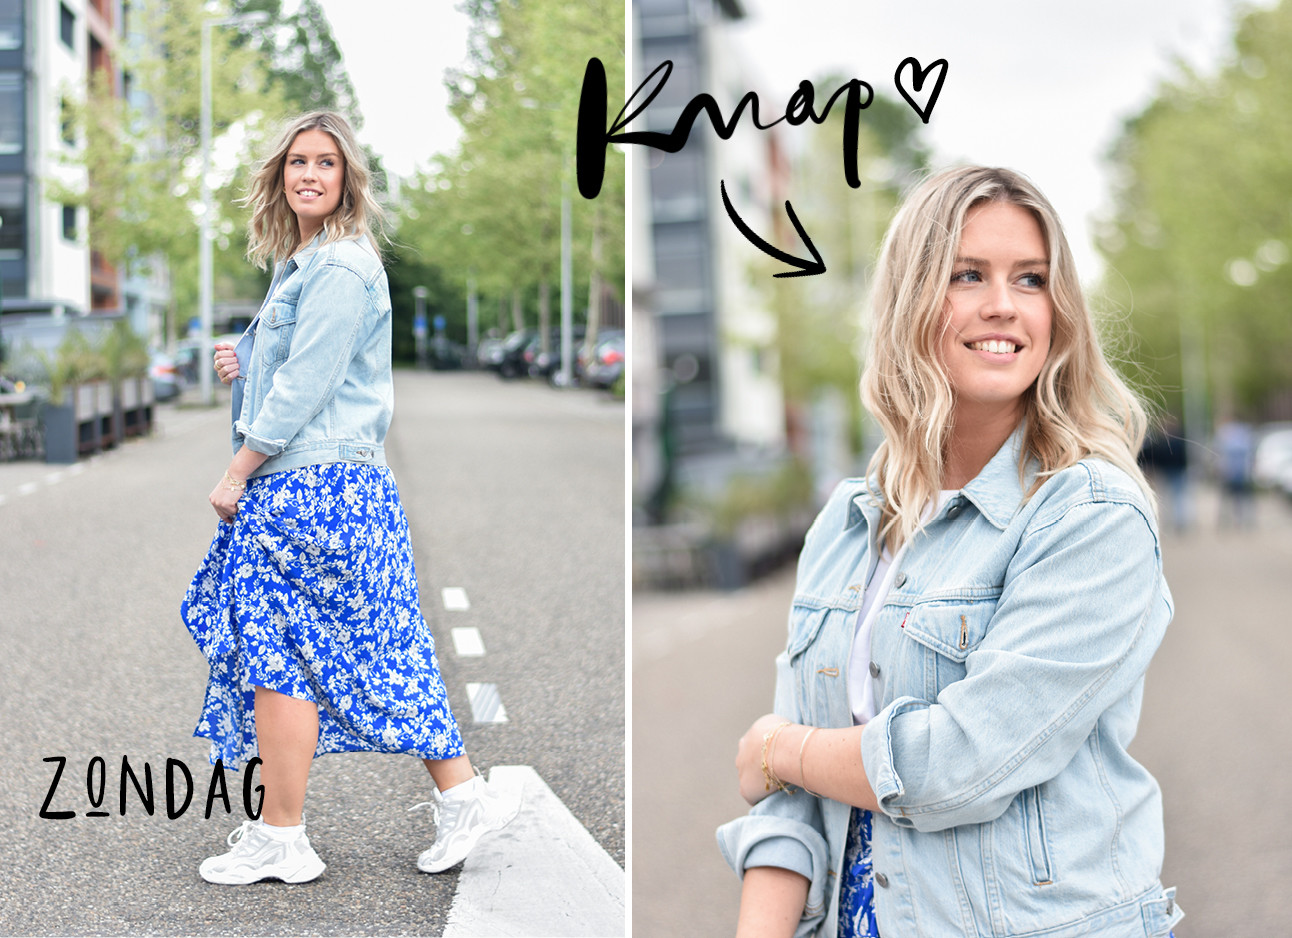 annick in de look of the day, denim jasje, blauwe midi rok met witte print, witte sneakers, beach waves